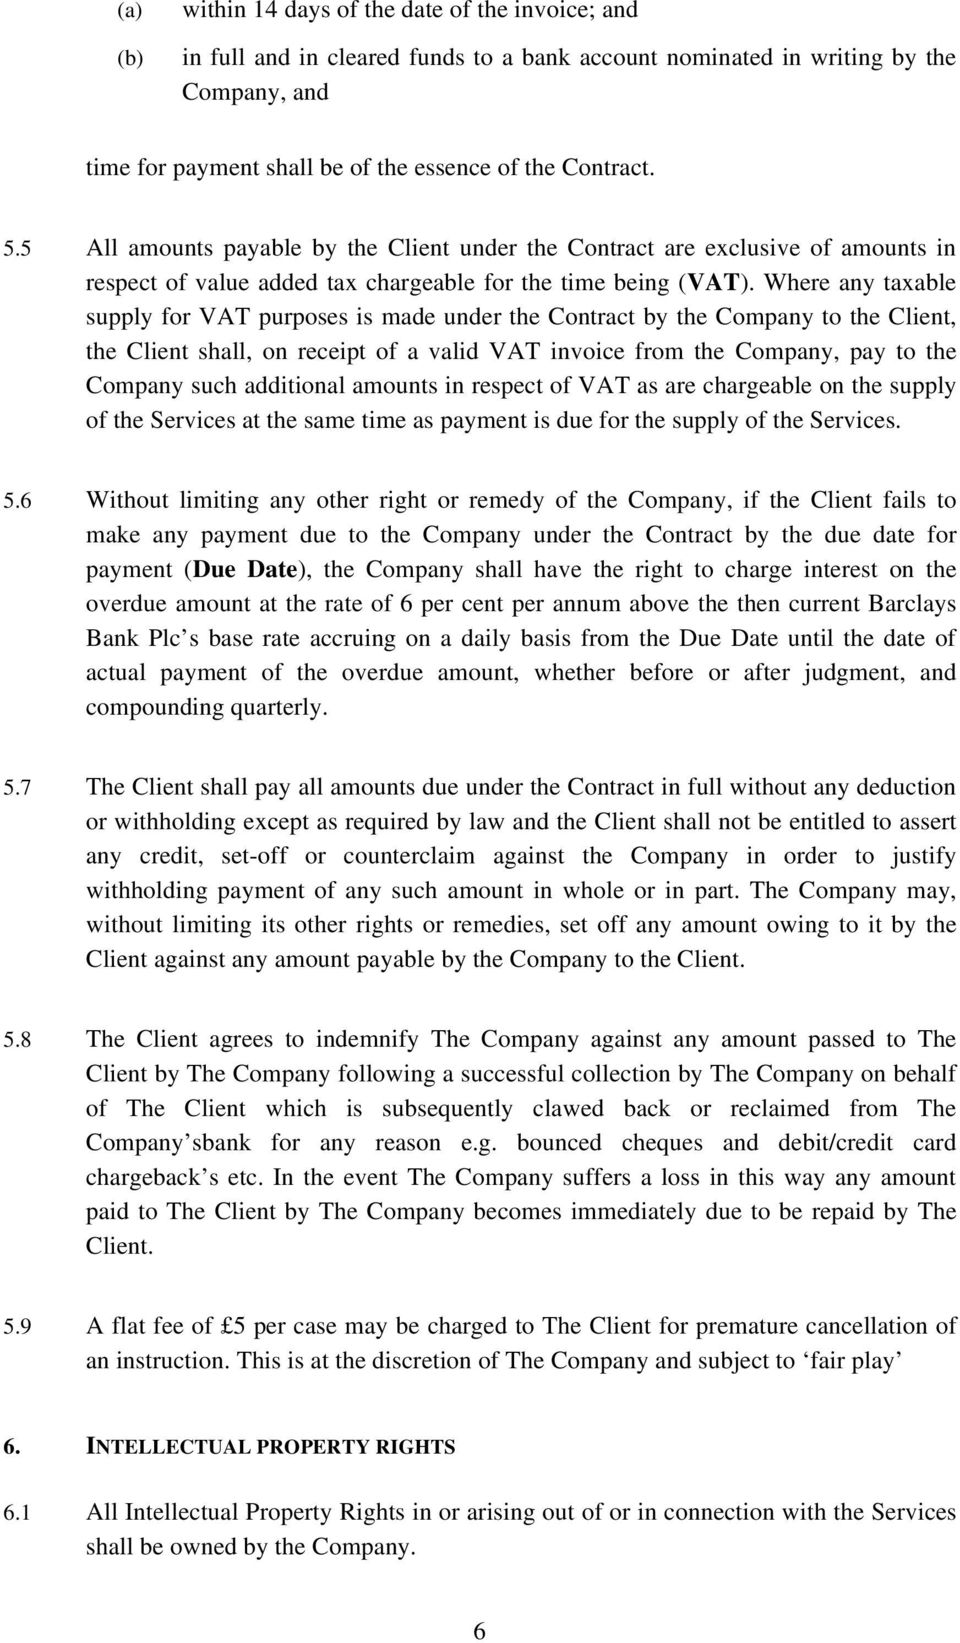 Where any taxable supply for VAT purposes is made under the Contract by the Company to the Client, the Client shall, on receipt of a valid VAT invoice from the Company, pay to the Company such